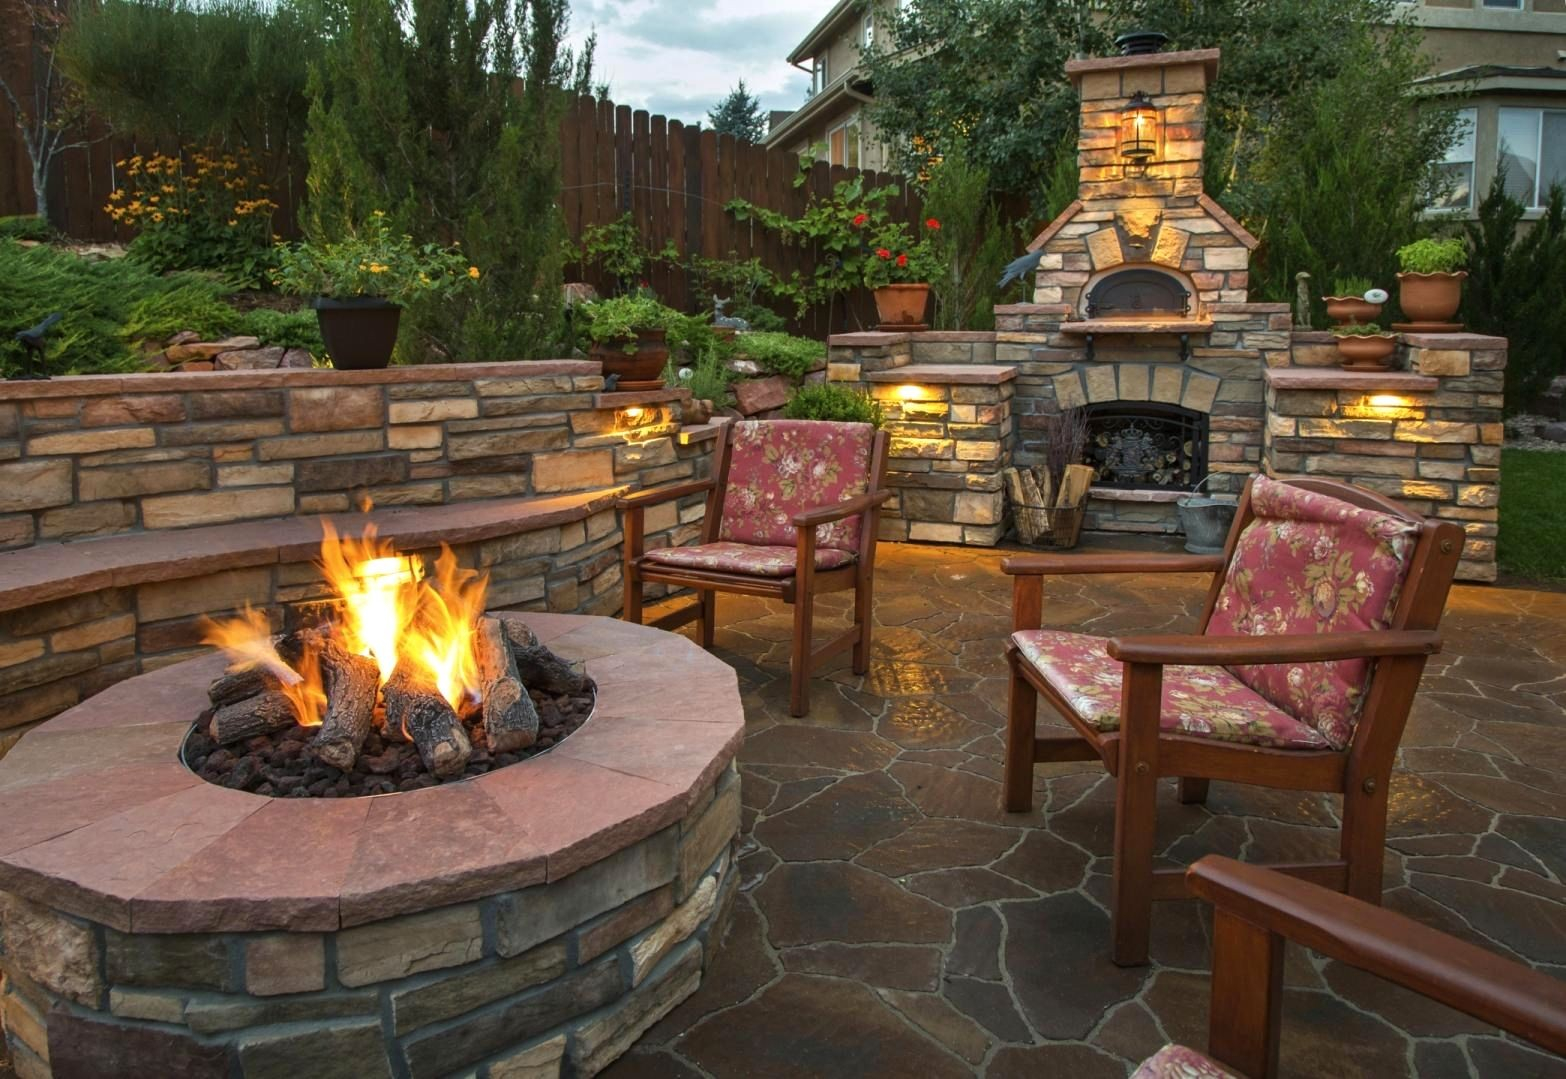 Backyard Landscaping Ideas With Fire Pit Turismoestrategicoco within Backyard With Fire Pit Landscaping Ideas